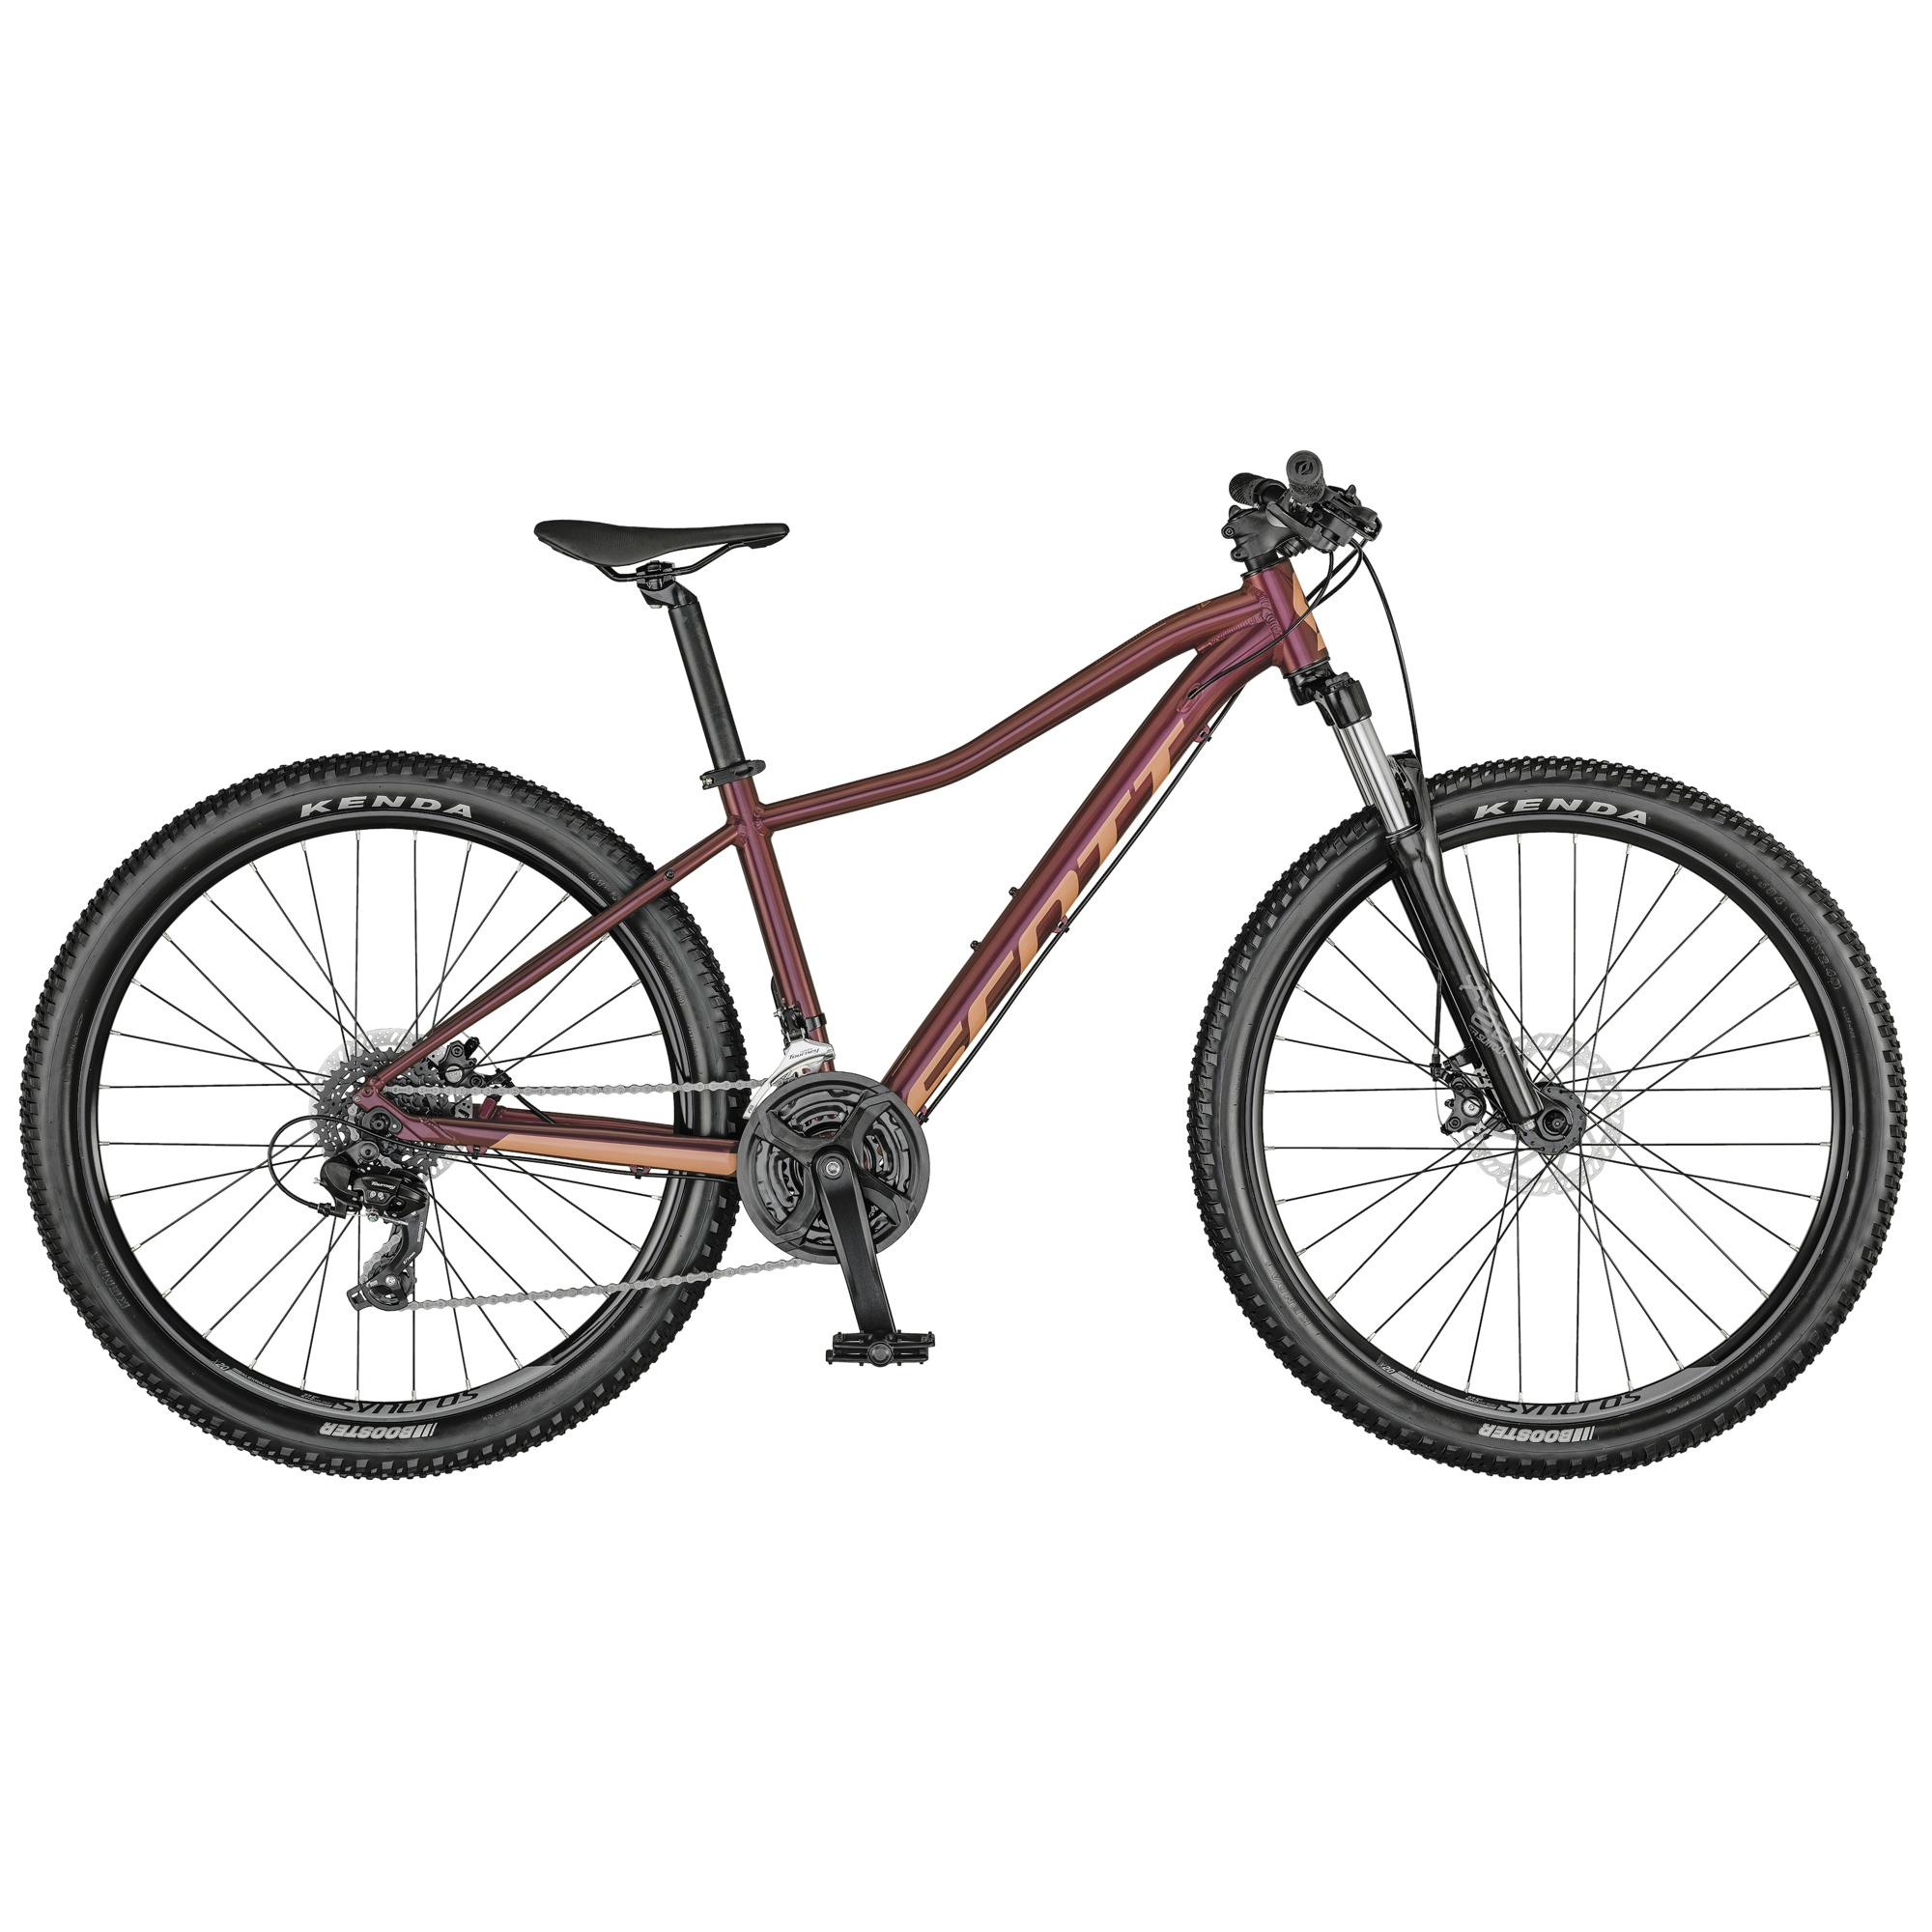 SCOTT CONTESSA ACTIVE 60 BIKE 008